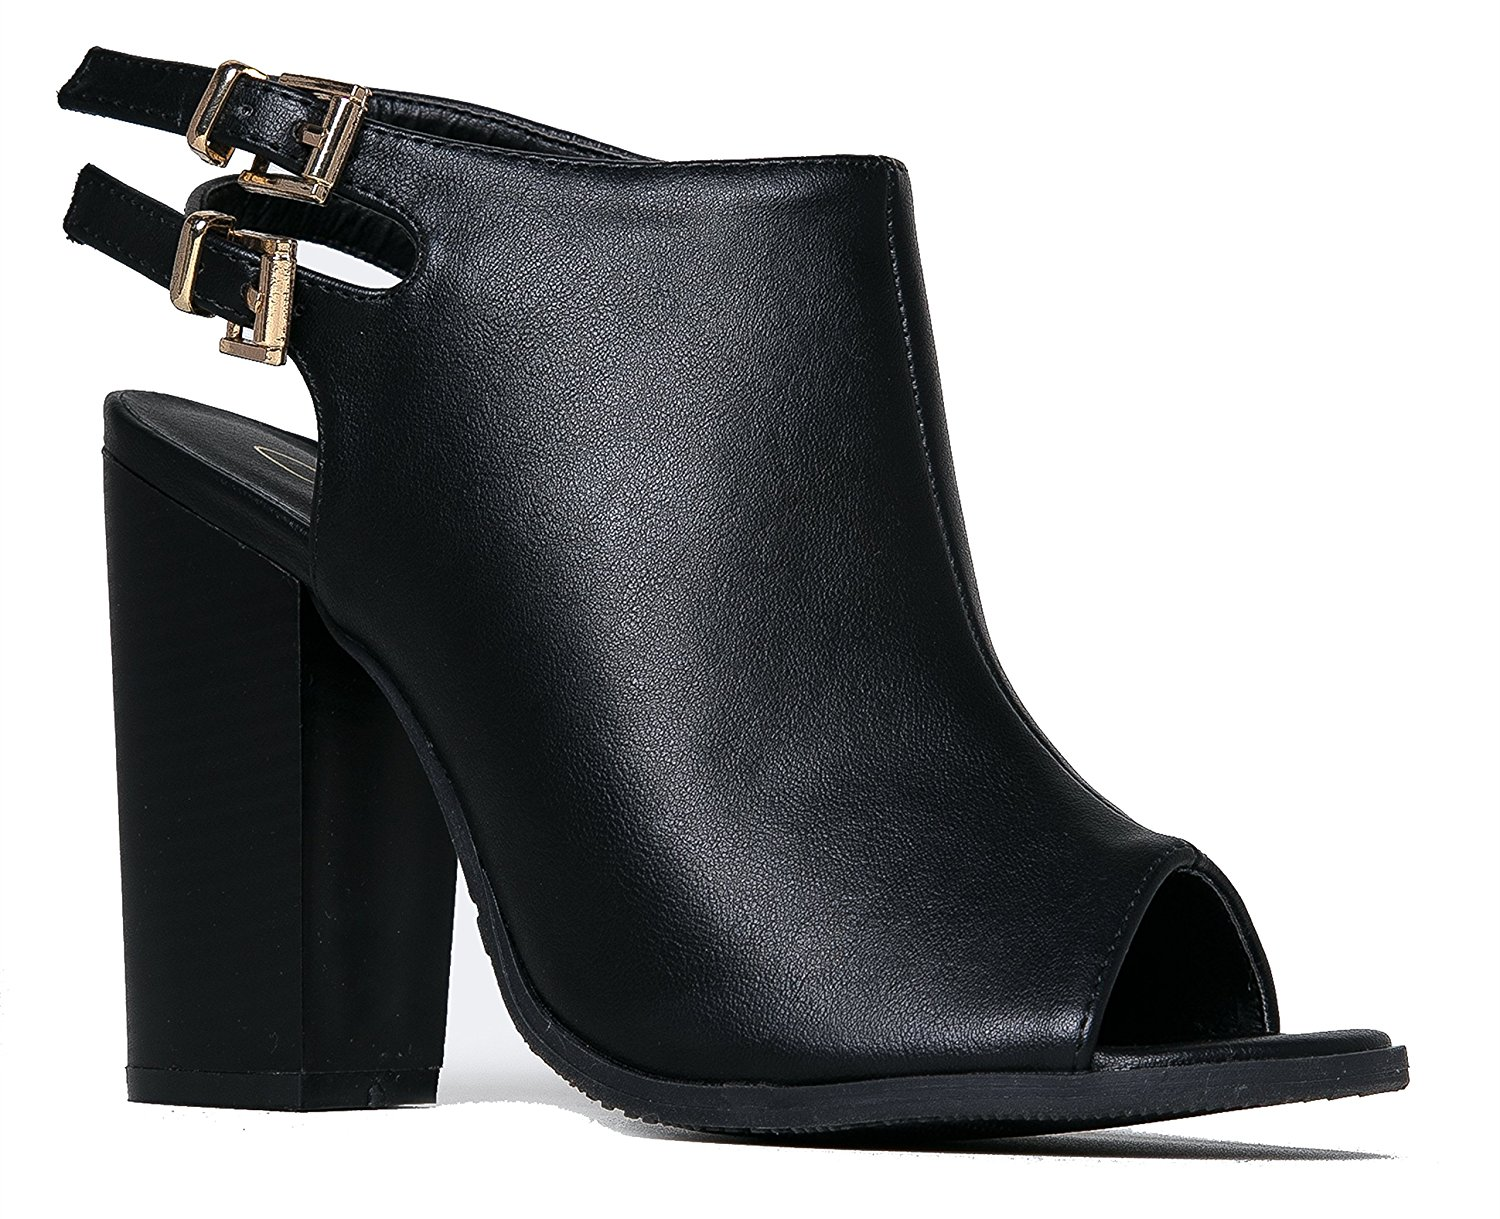 13a27b81a25 Get Quotations · MarBel Anne Marie Sarah-11 Peep Toe Bootie -Stacked High  Heel - Open Toe